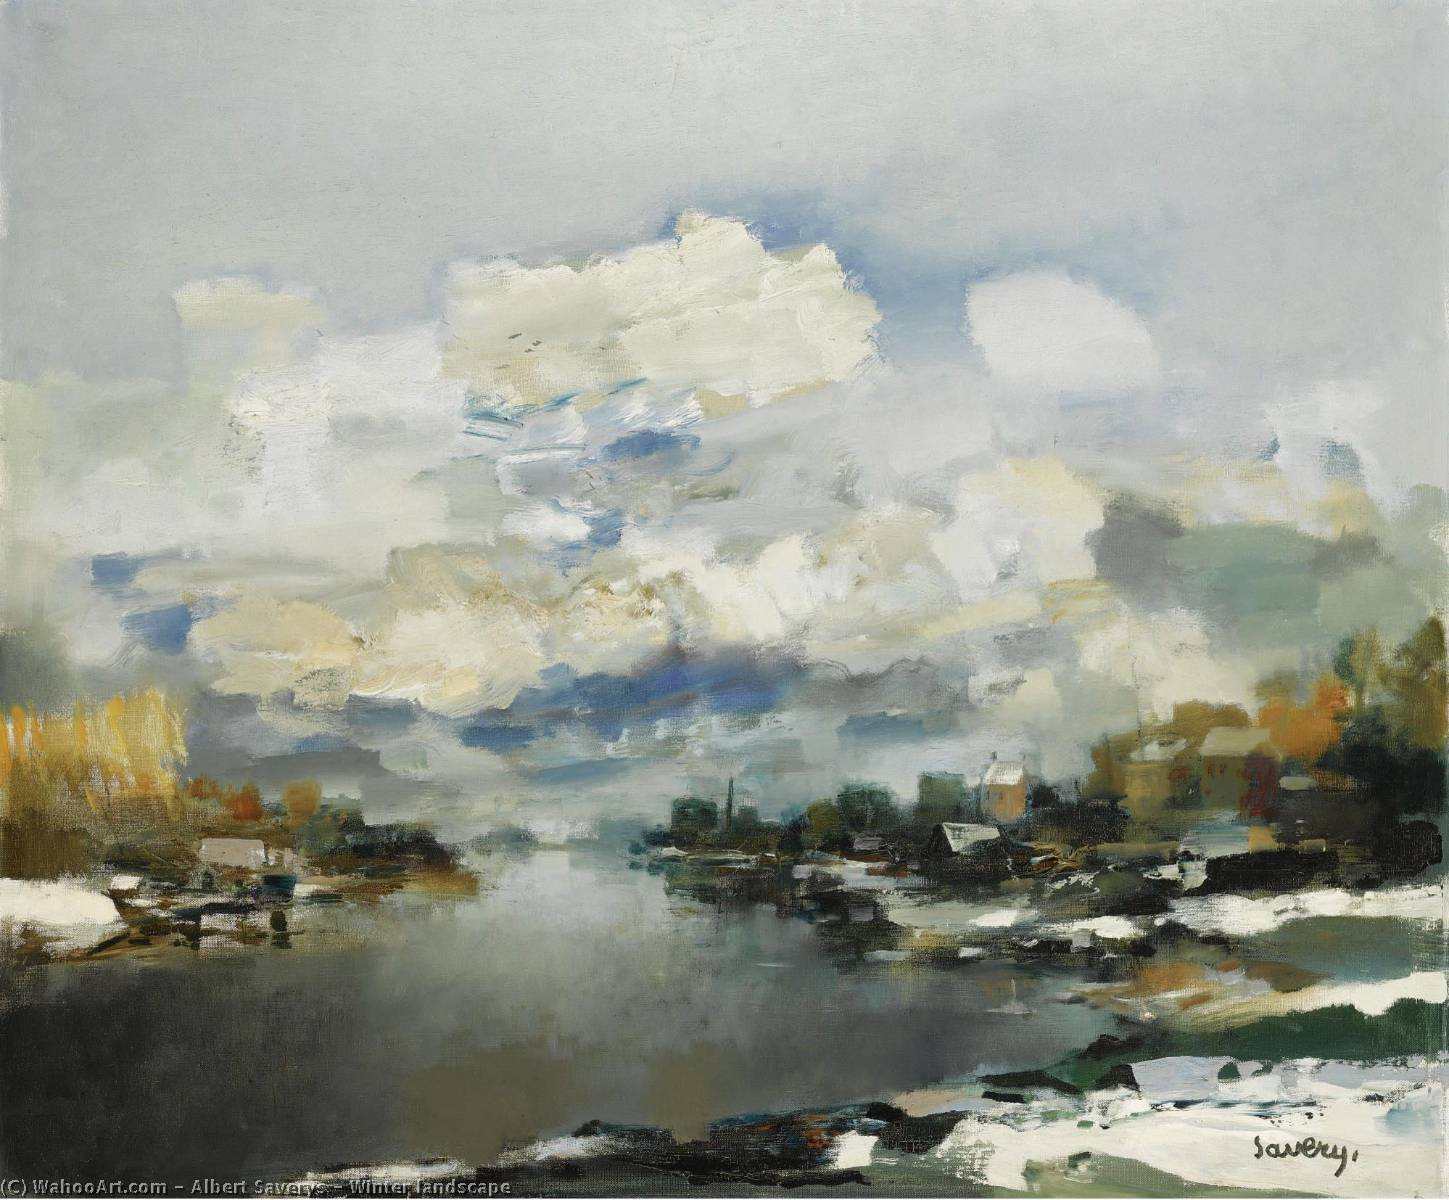 Winter landscape by Albert Saverys | Art Reproductions Albert Saverys | WahooArt.com